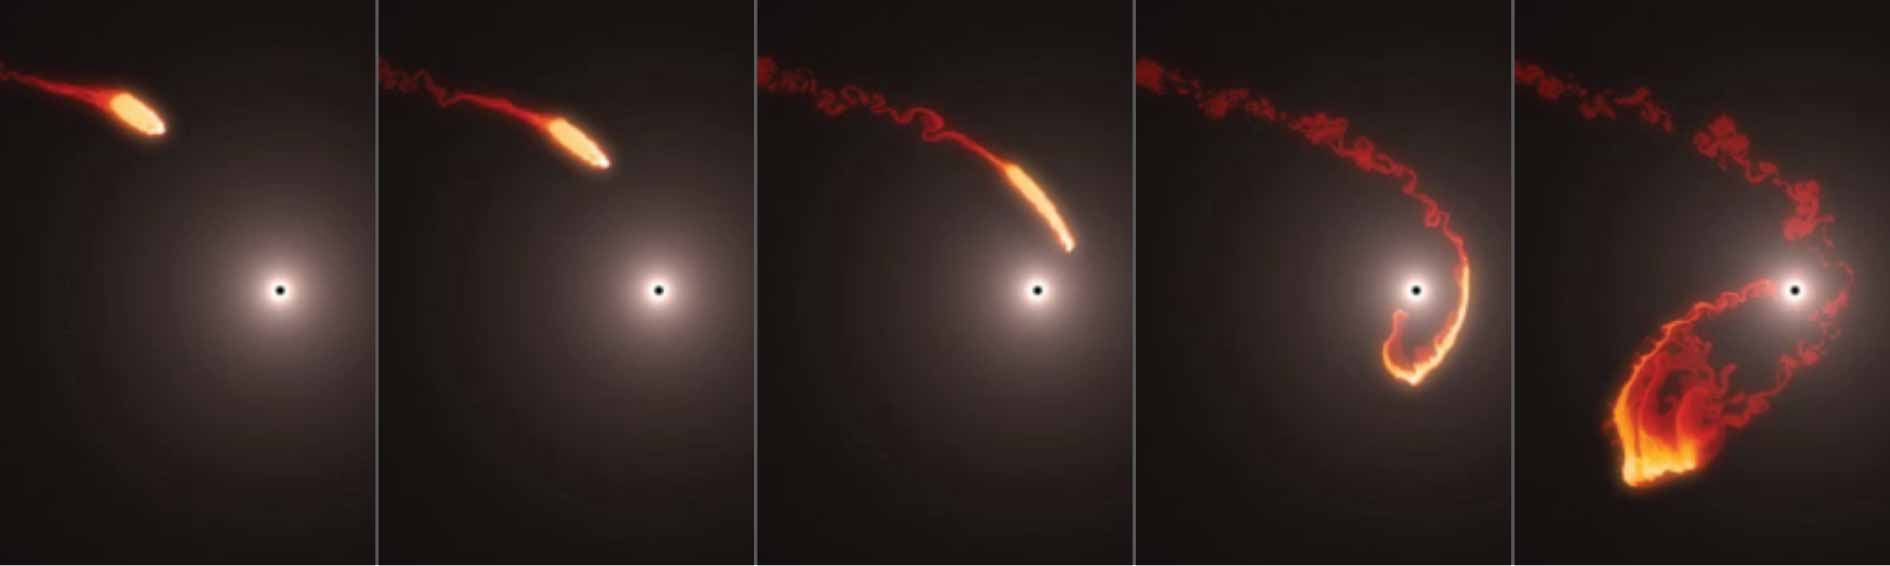 Simulation of G2, a gas cloud, encountering Sagittarius A*, a large black hole at the center of our galaxy. Credit: New York Times